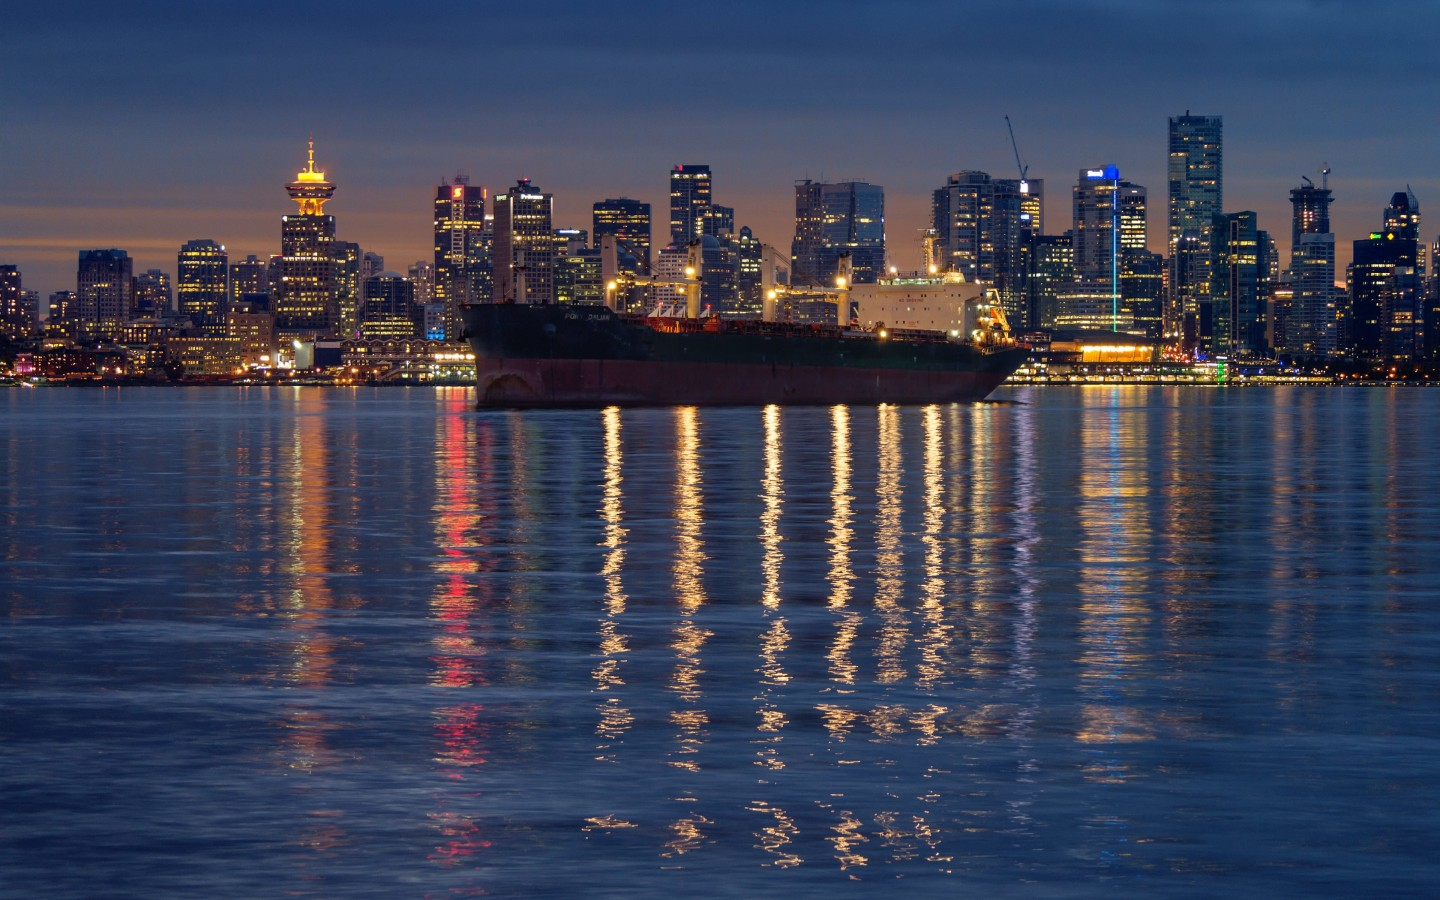 Downtown Vancouver, Canada Wallpaper for Desktop 1440x900